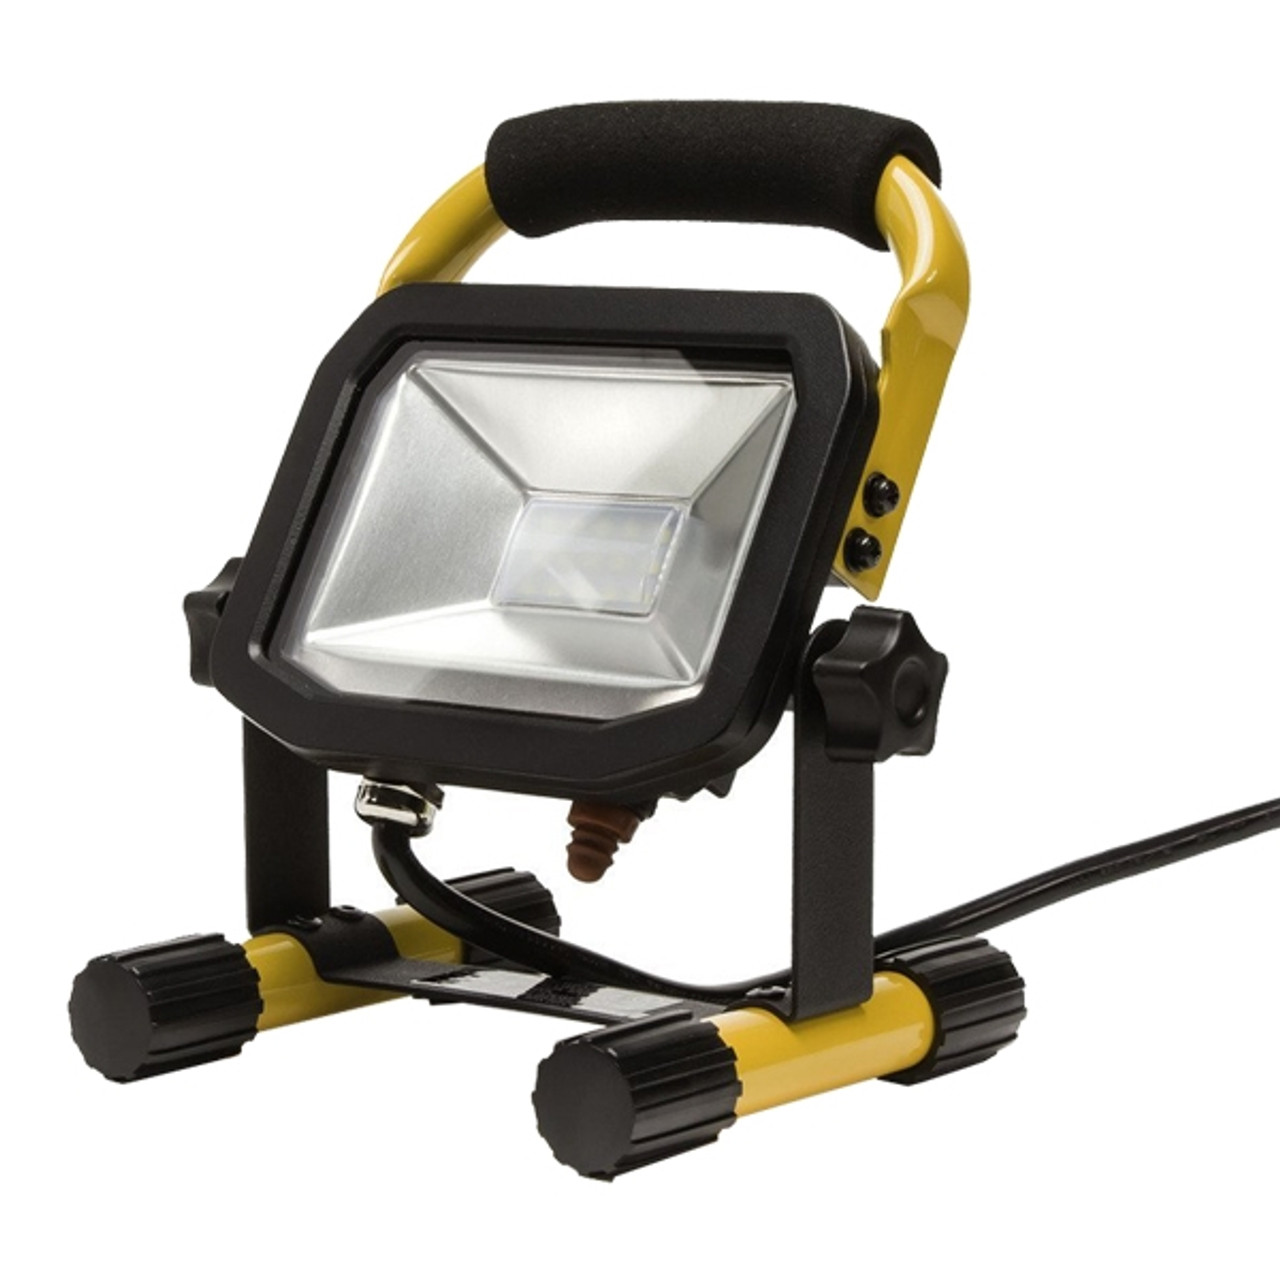 Slimline Portable Led Outdoor Worklight